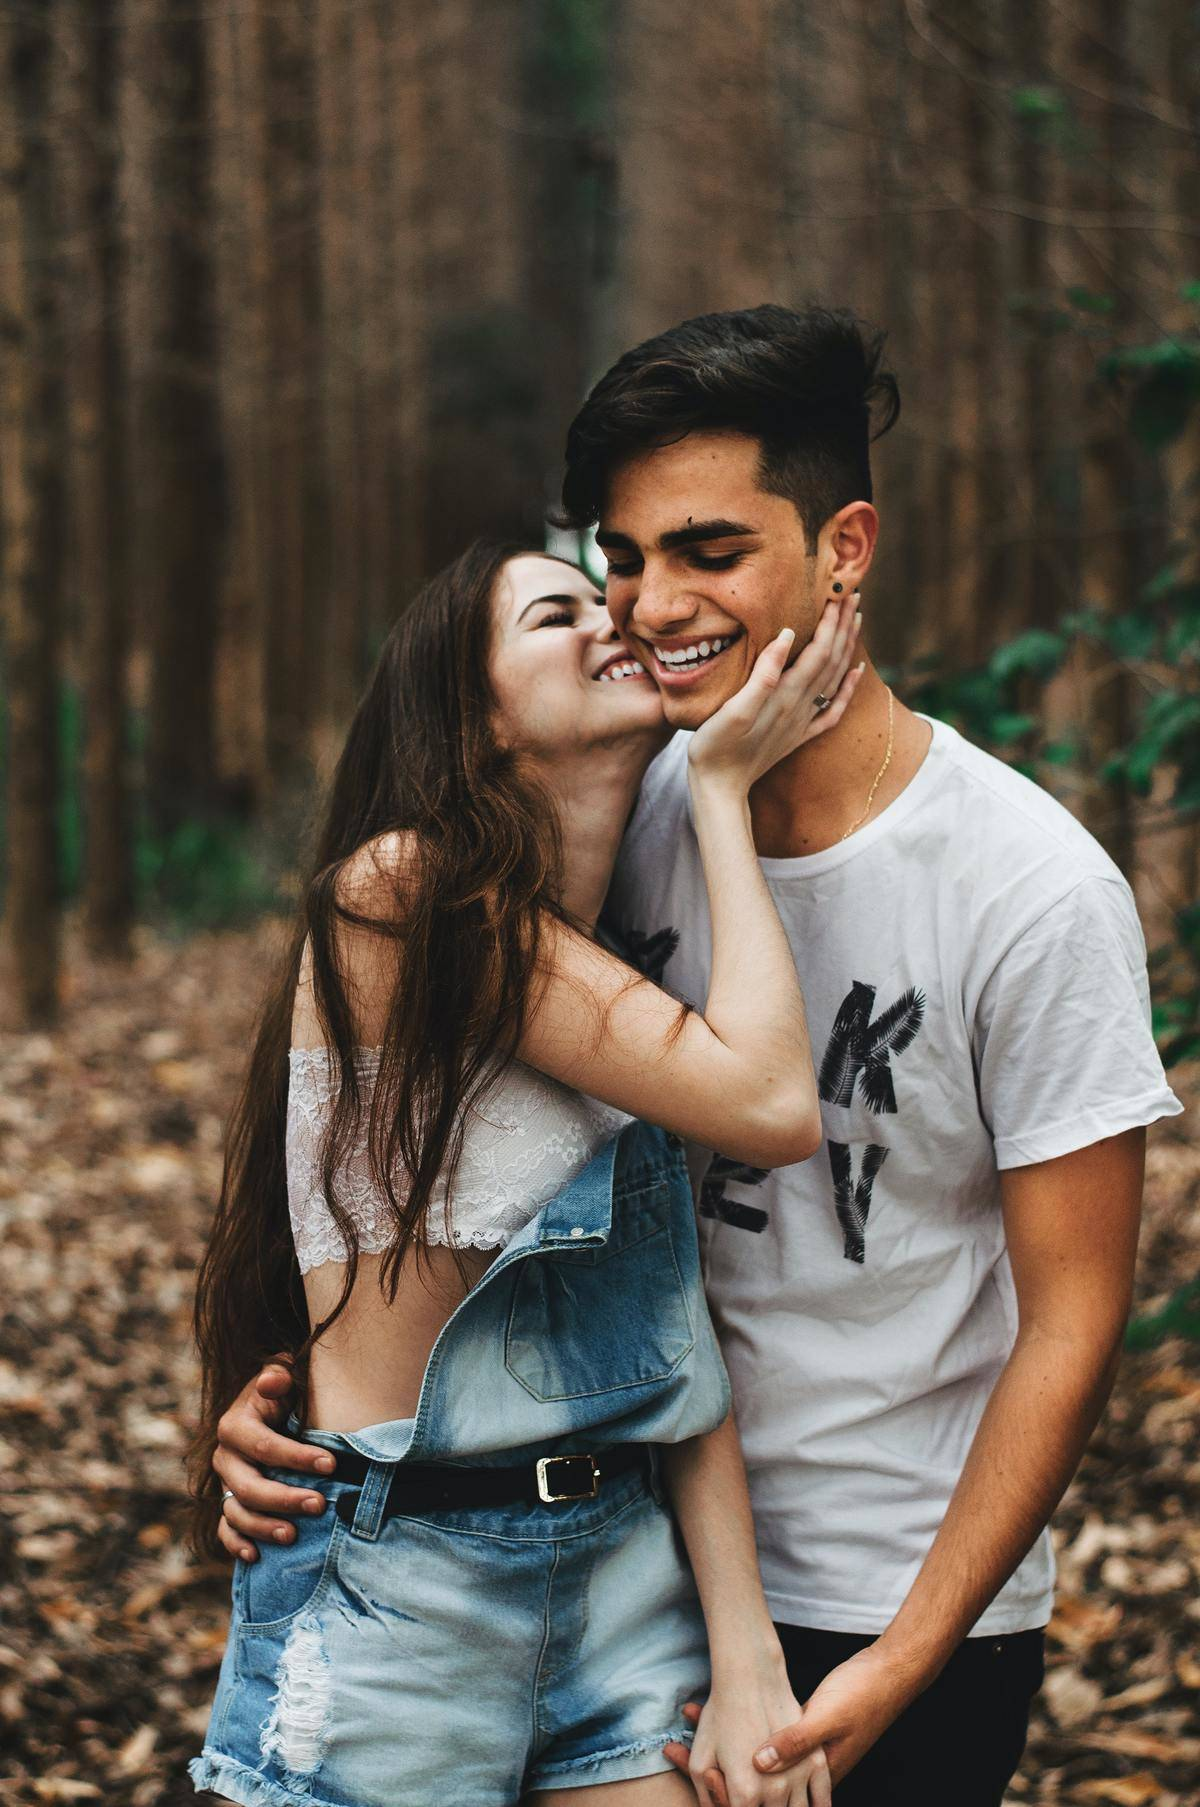 girl giving a guy a kiss on the cheek while they are both smiling